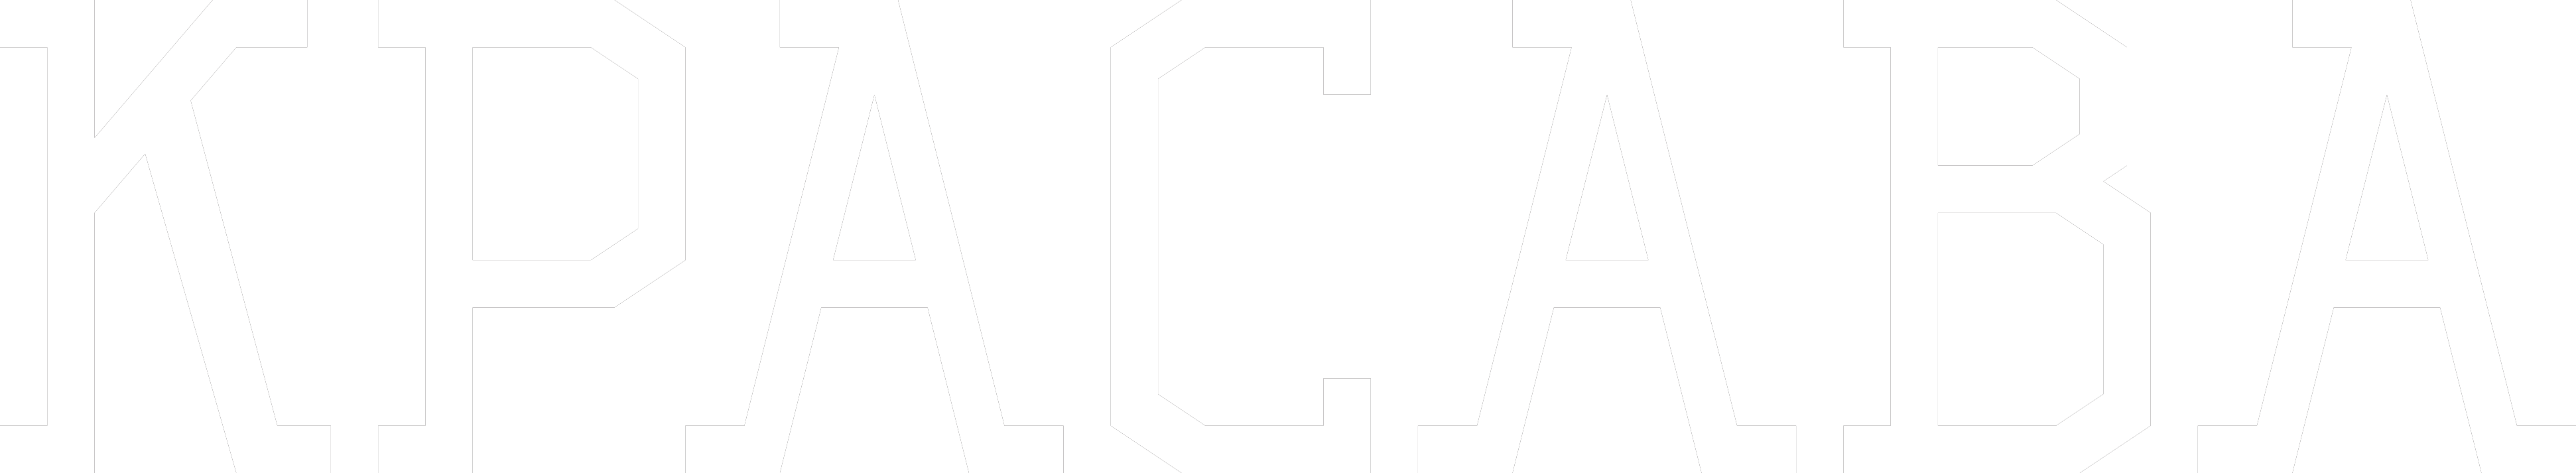 MerchMerch